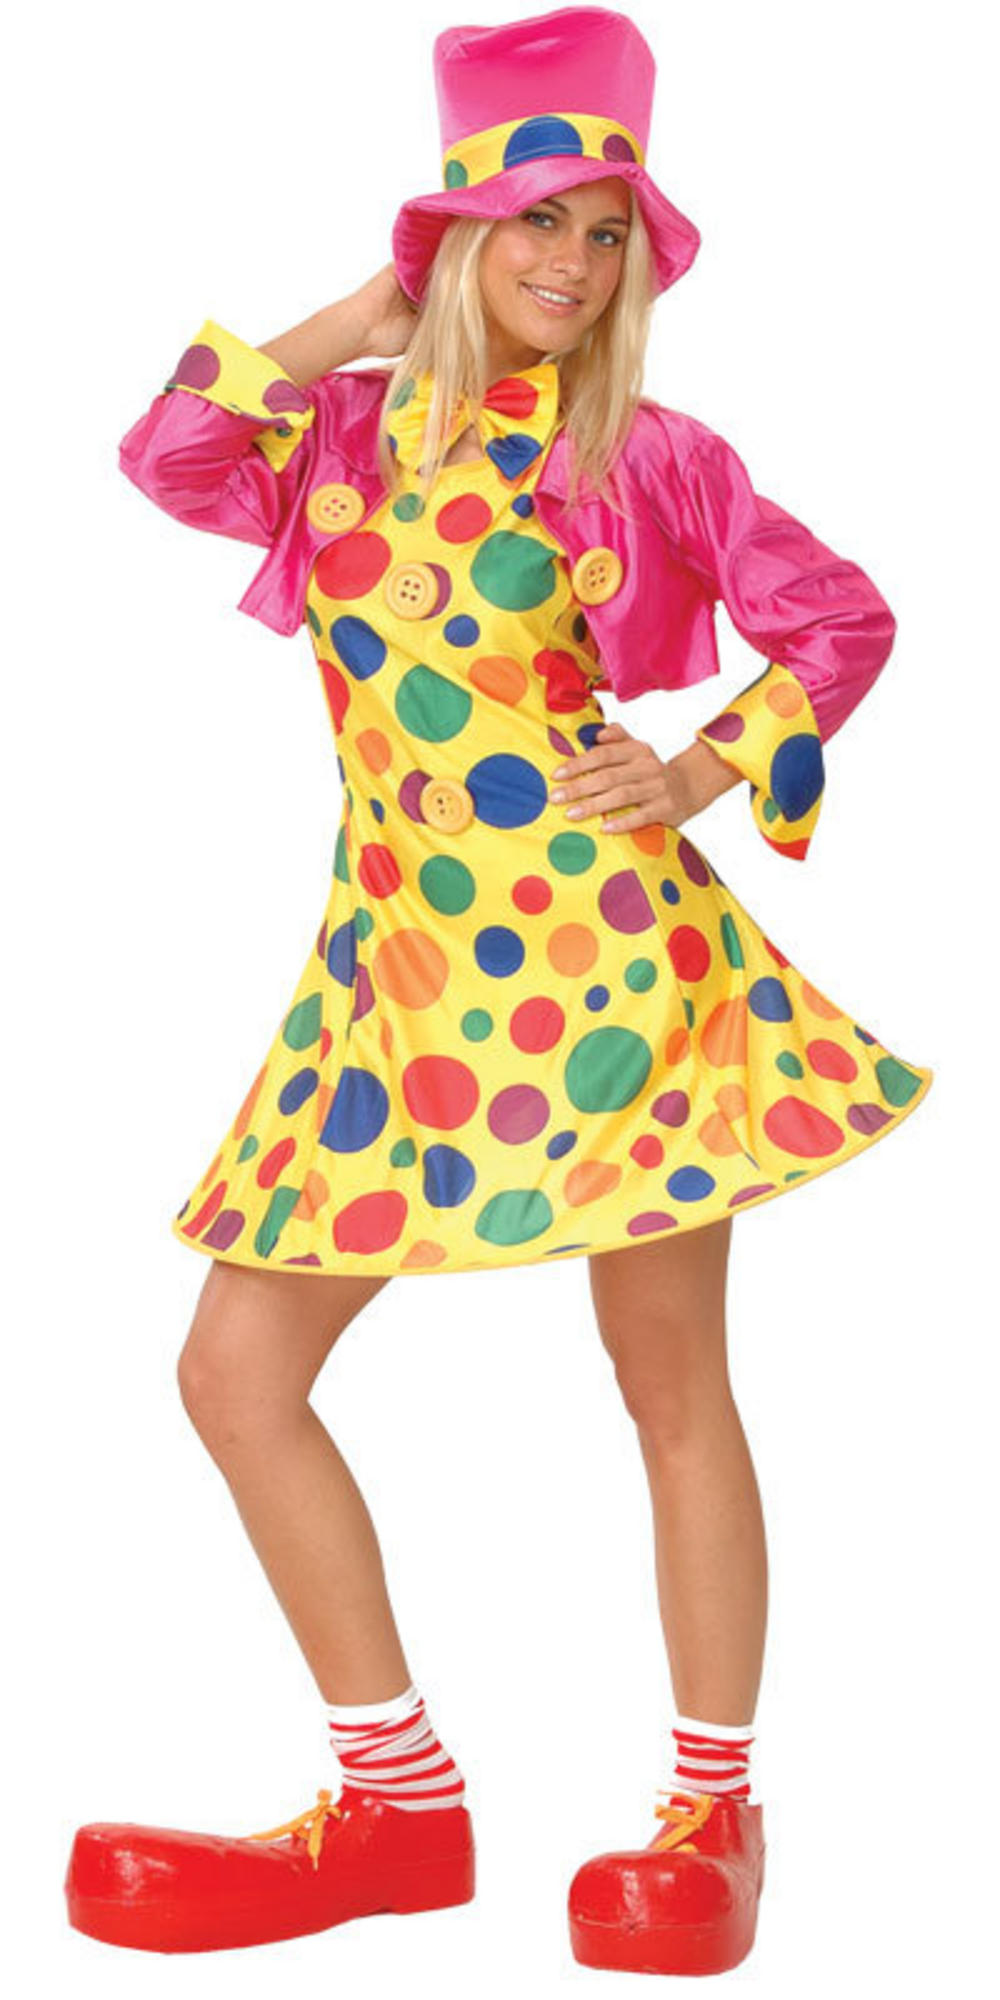 Clowning Around Clown Costume